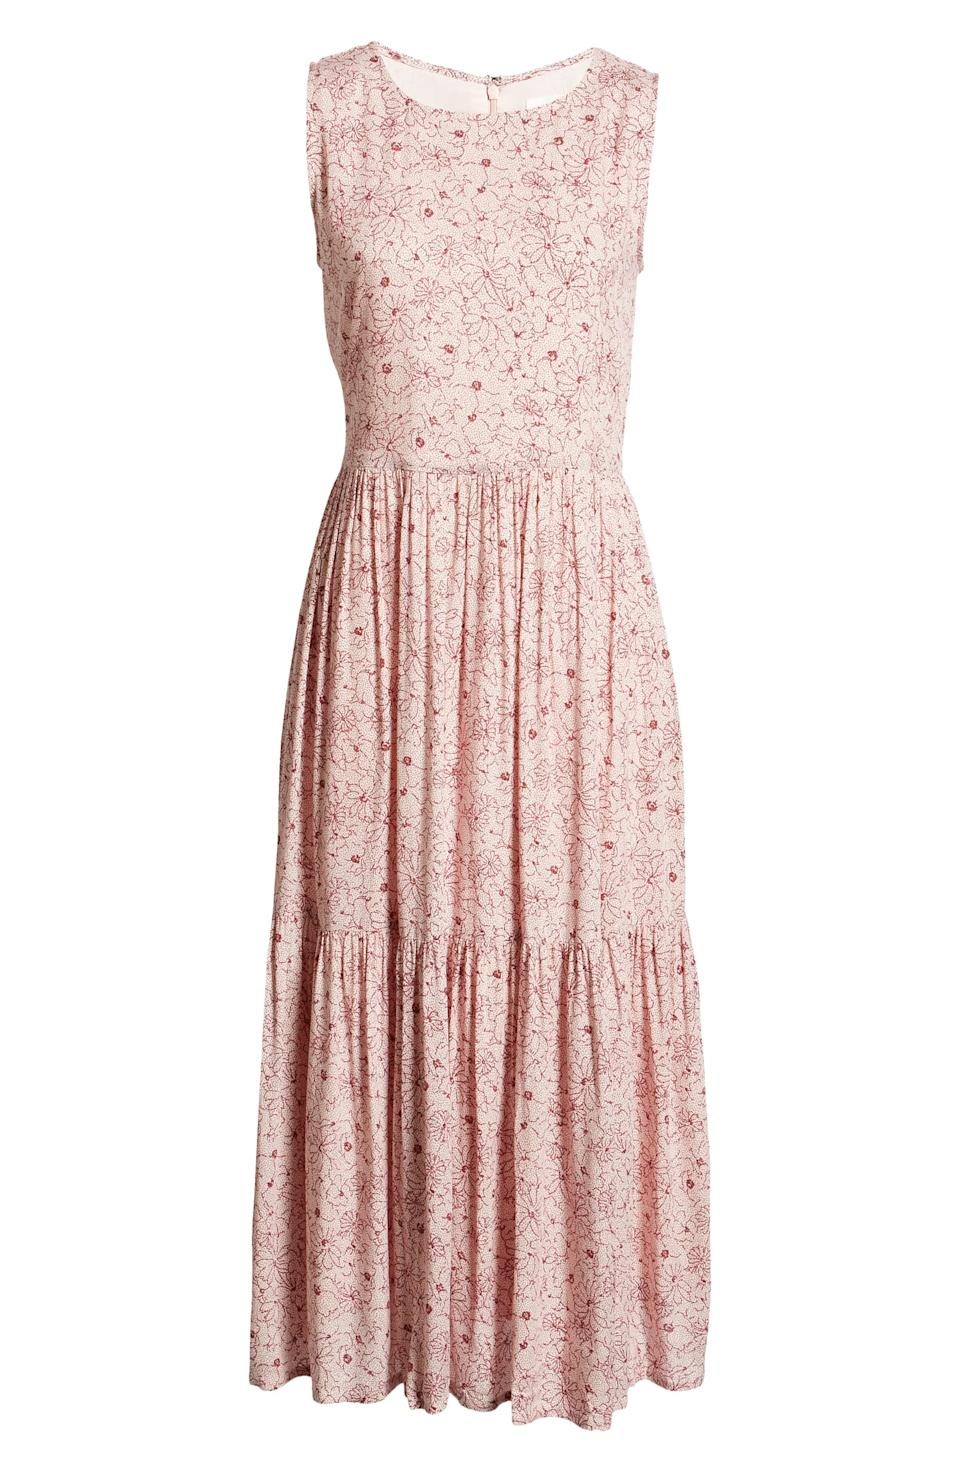 Treasure & Bond Floral Tiered Dress. Image via Nordstrom.